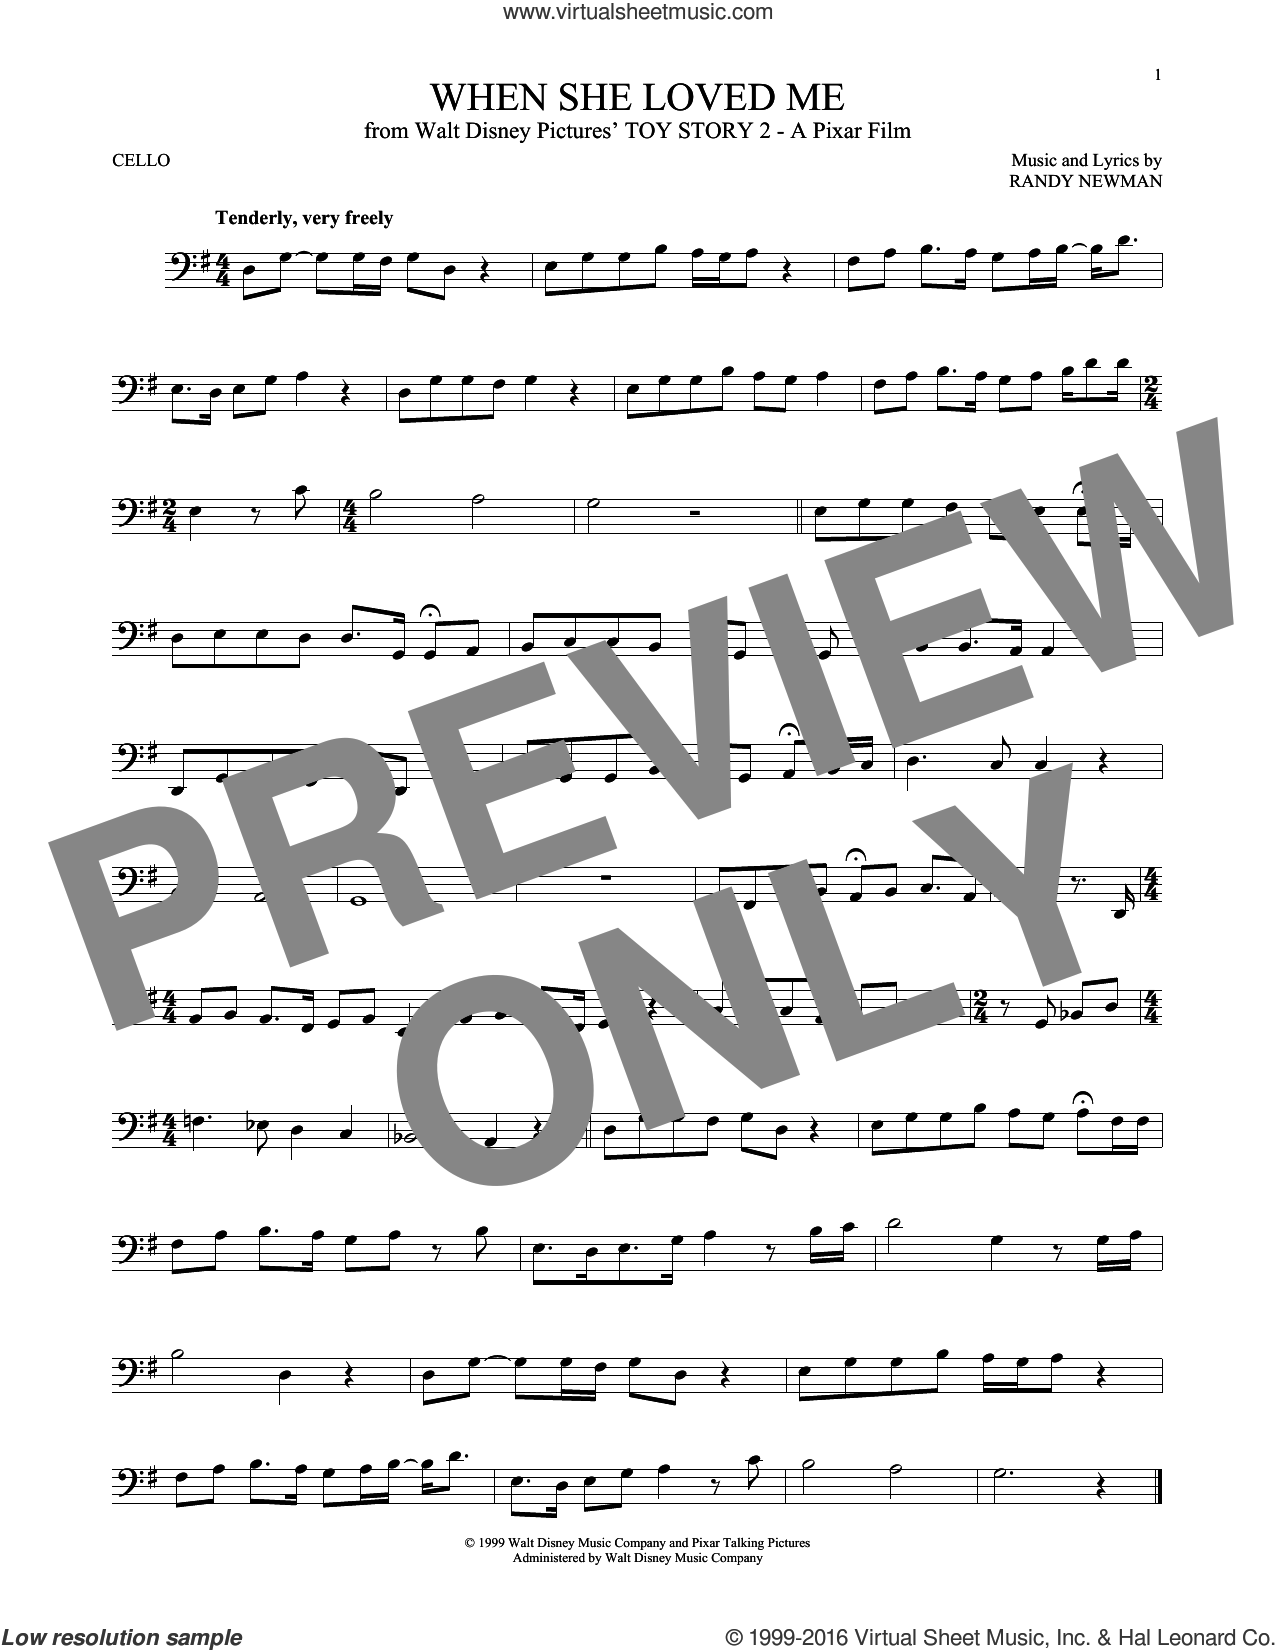 When She Loved Me (from Toy Story 2) sheet music for cello solo by Sarah McLachlan and Randy Newman, intermediate skill level